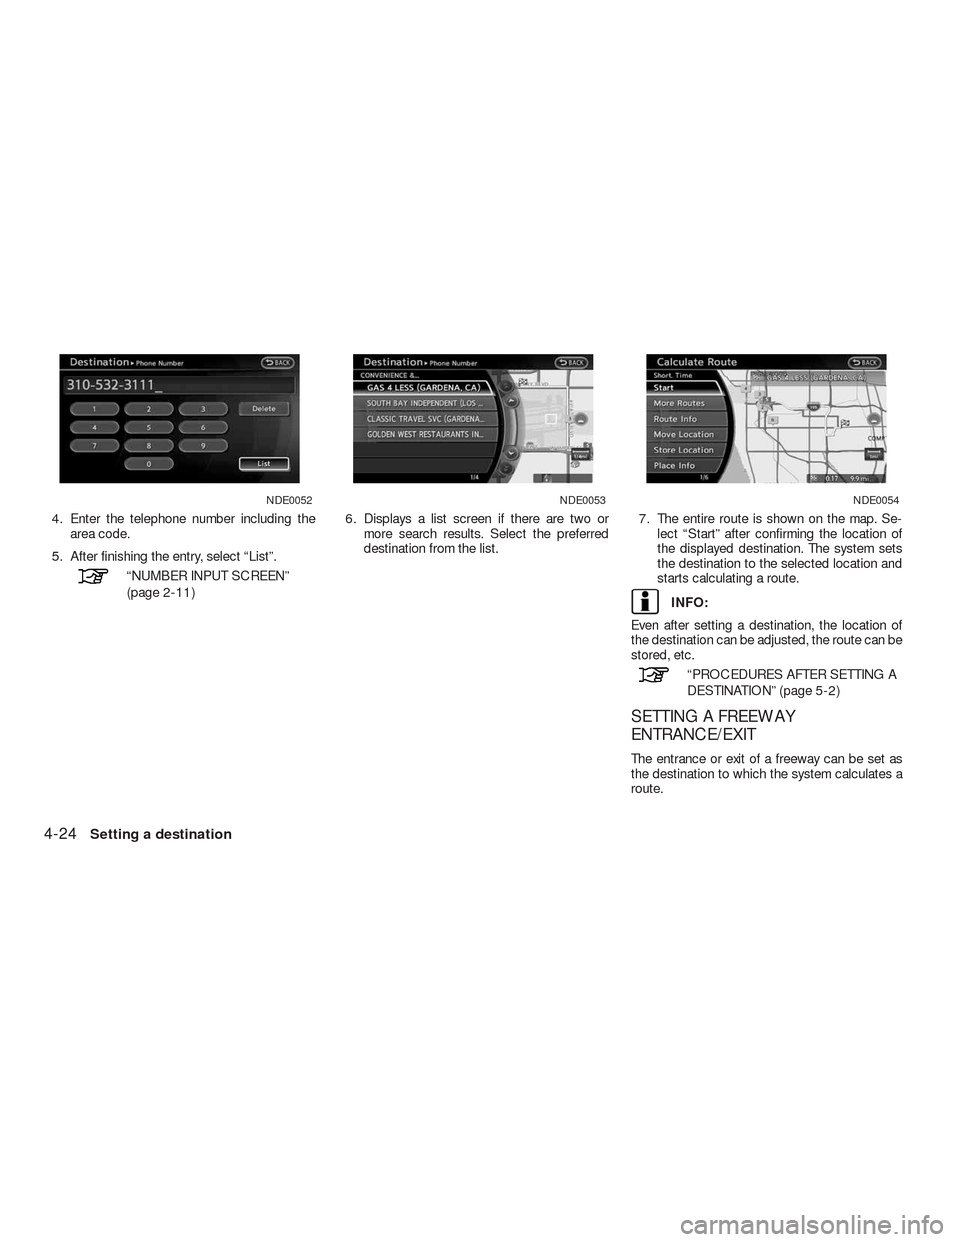 NISSAN ALTIMA HYBRID 2010 L32A / 4.G Navigation Manual, Page 95